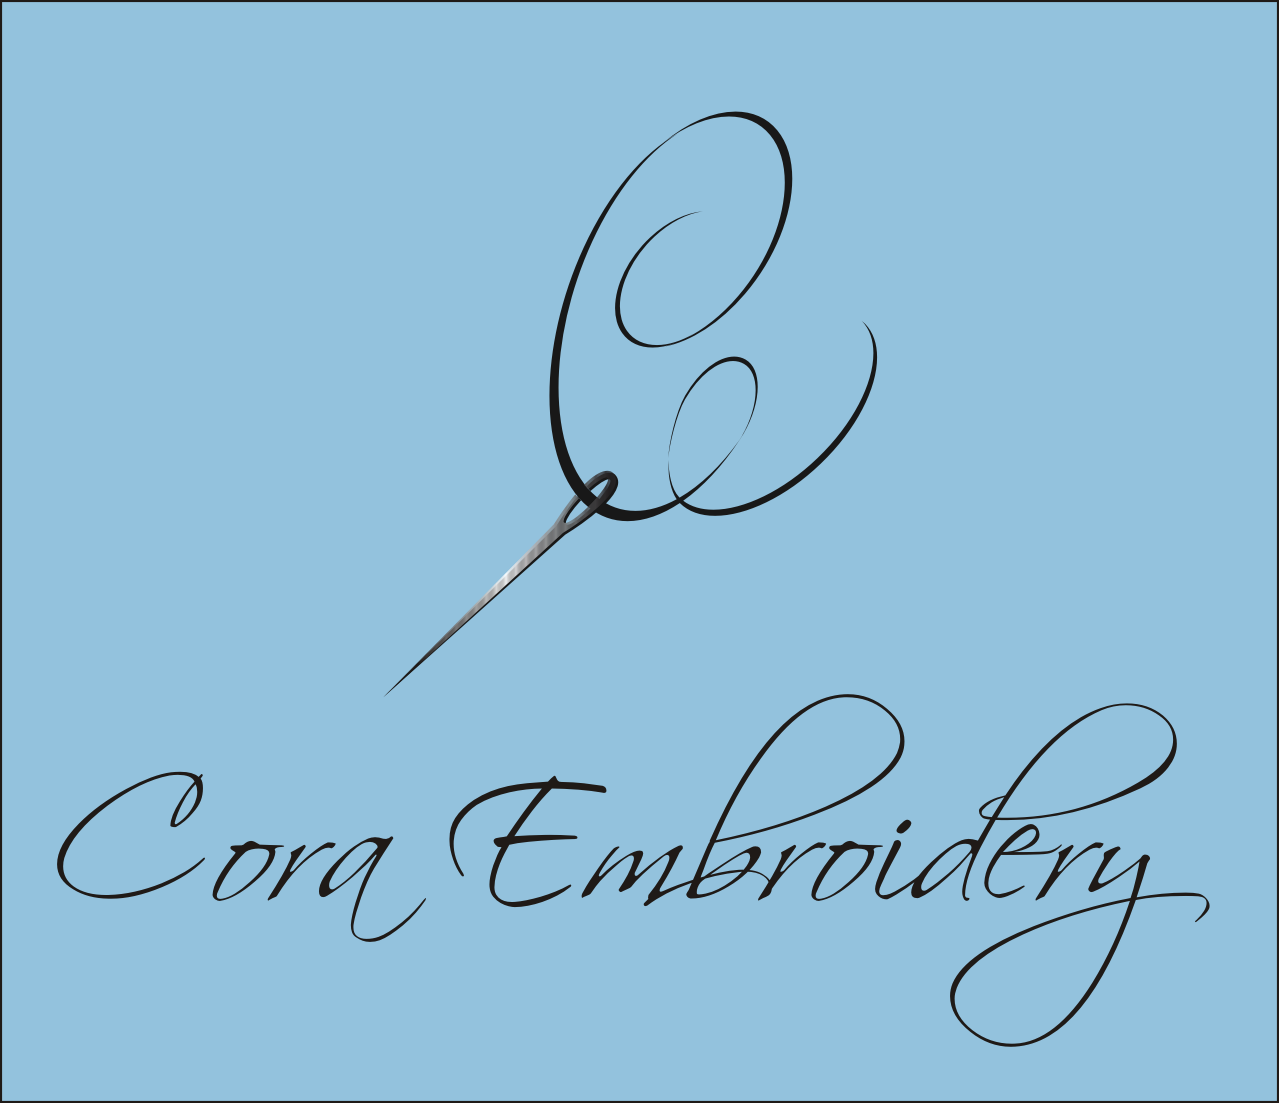 Cora Embroidery